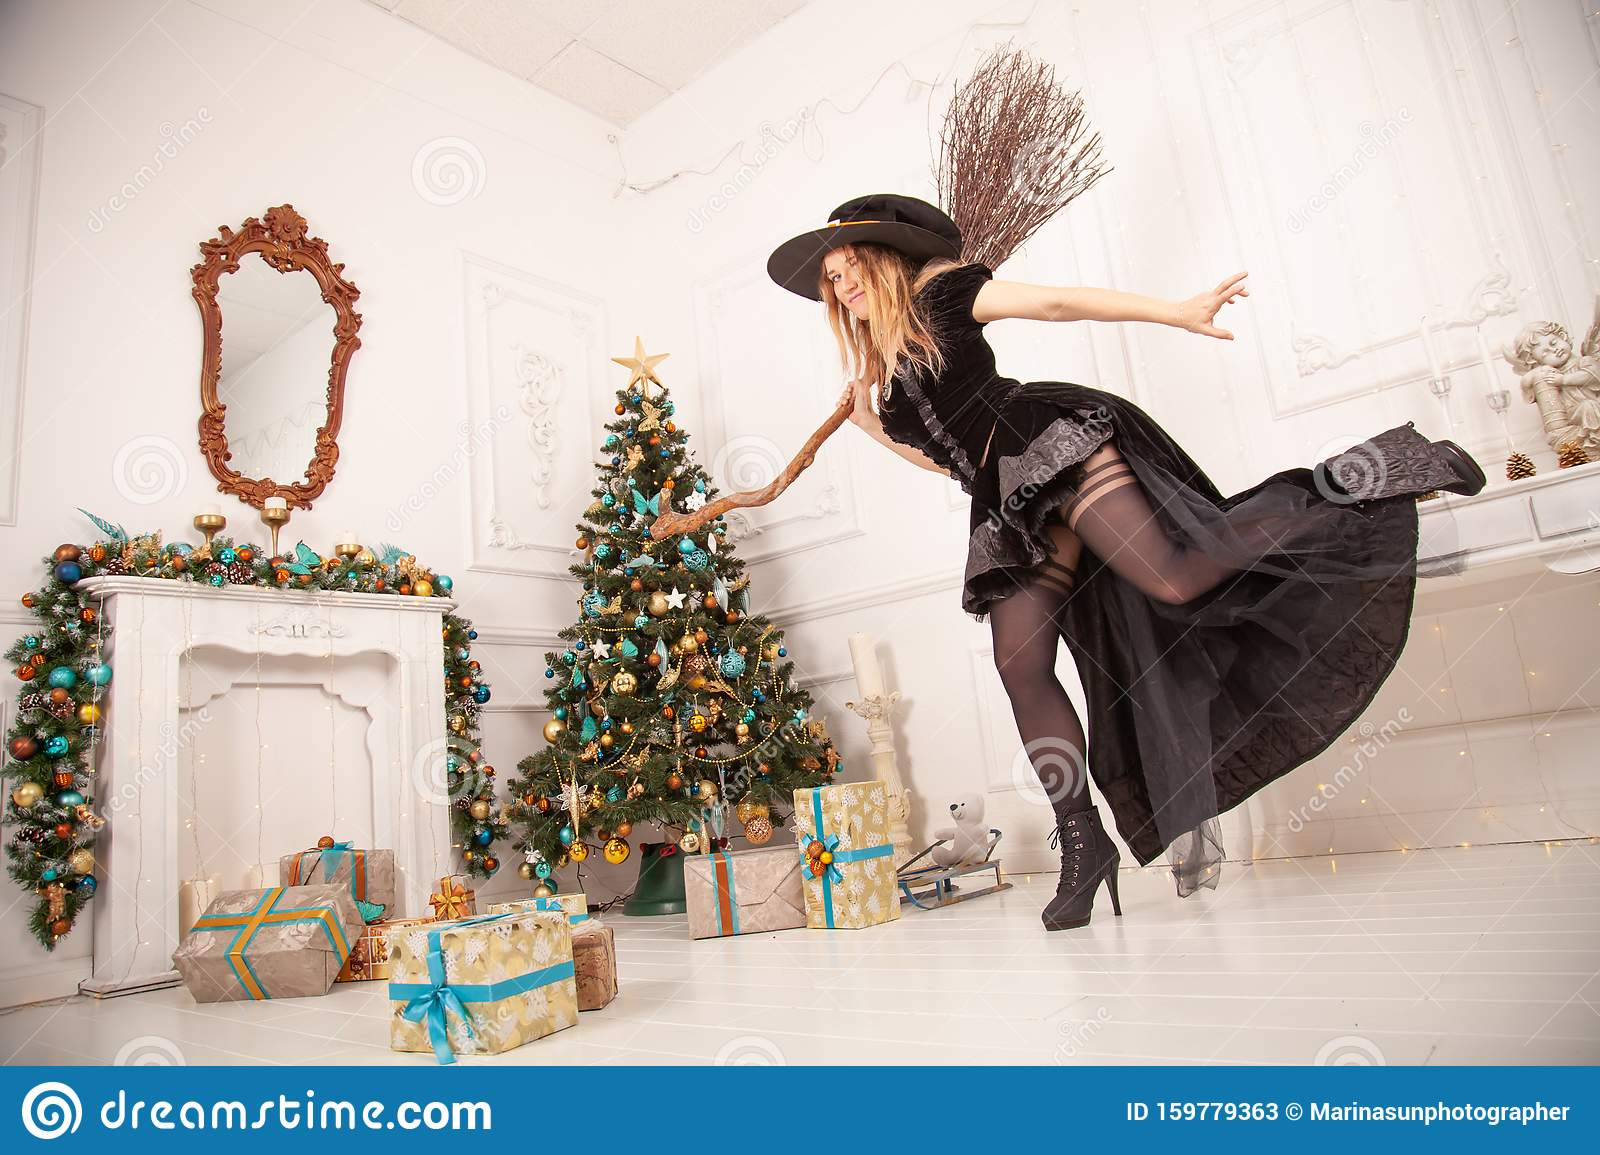 The Evil Witch In Black Dress And Scary Hat From Halloween Came For Christmas And Tries To Spoil A Holiday Swinging The Stock Image Image Of Green Expression 159779363